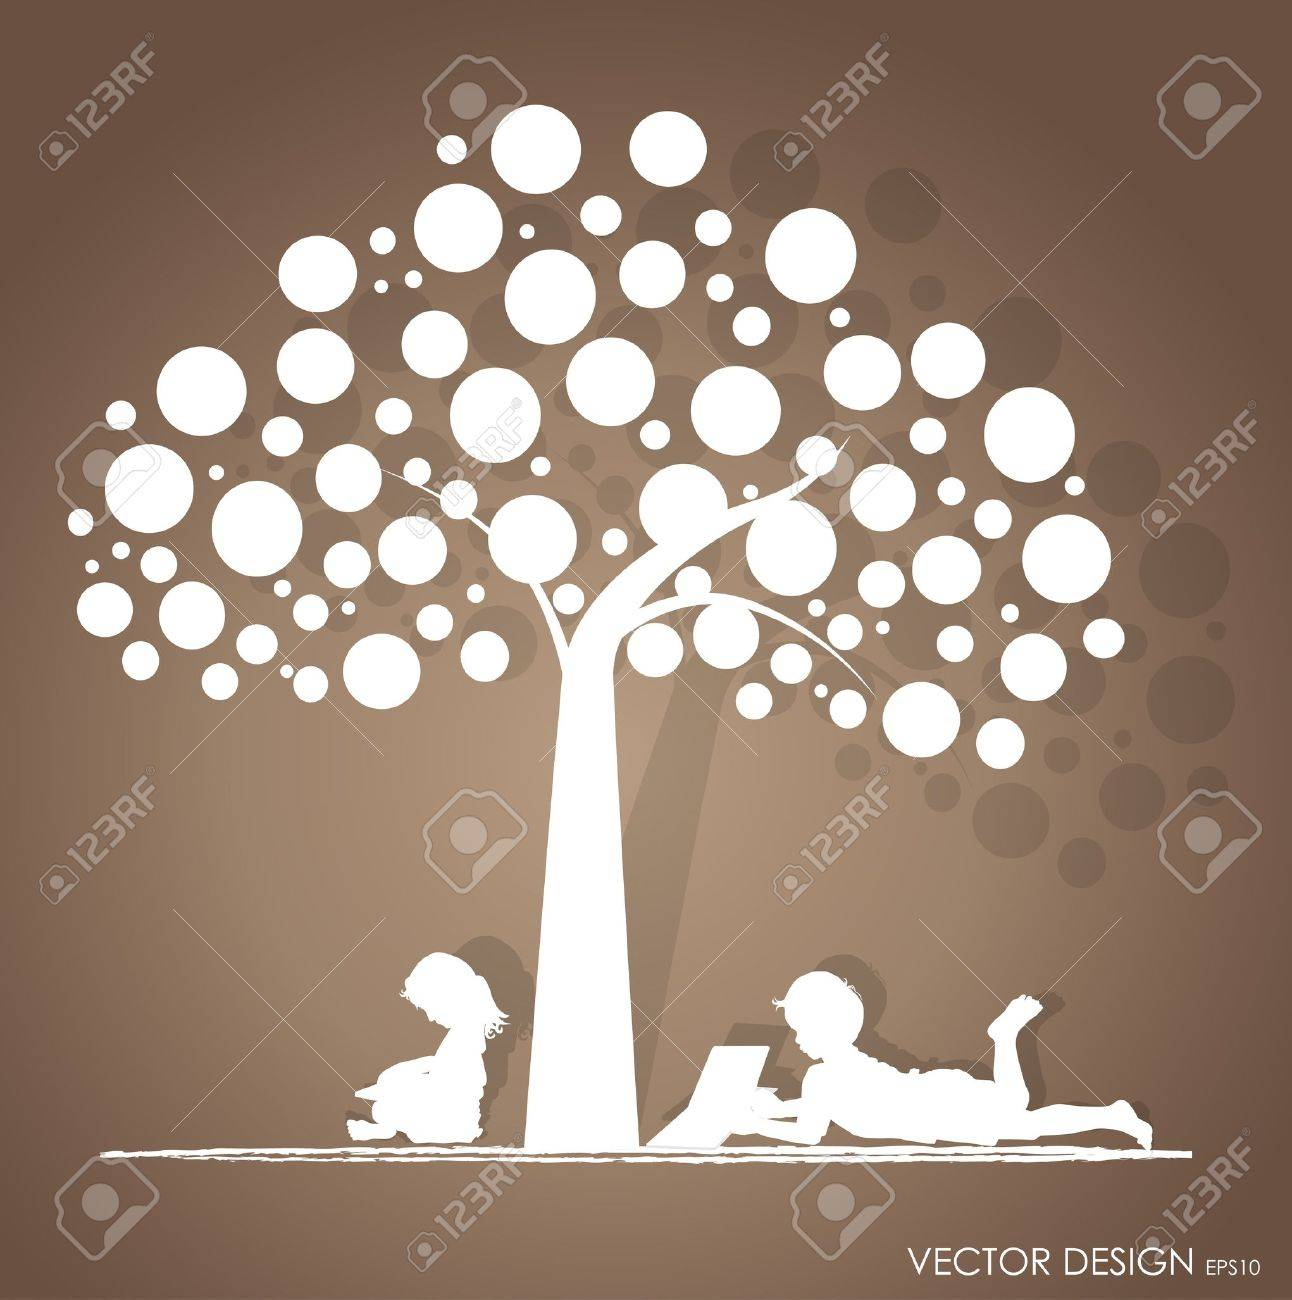 background with children read a book under tree  Illustration Stock Vector - 16210019